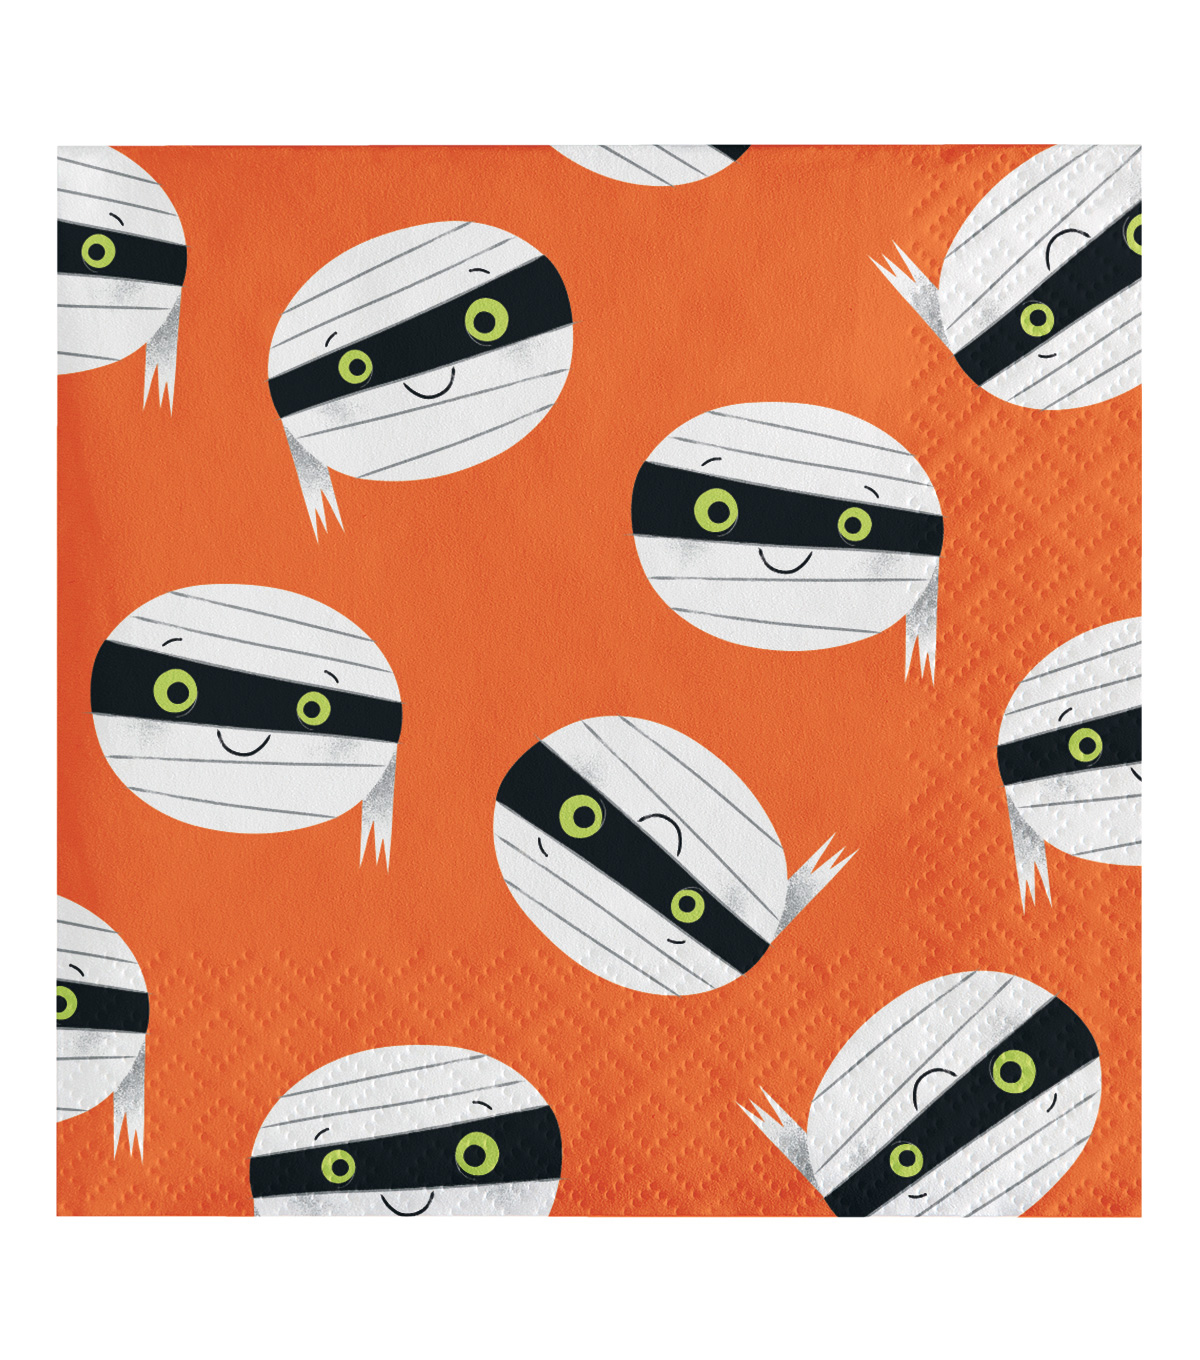 Maker\u0027s Halloween 20 pk 5\u0027\u0027x5\u0027\u0027 Beverage Napkins-Mummy Faces